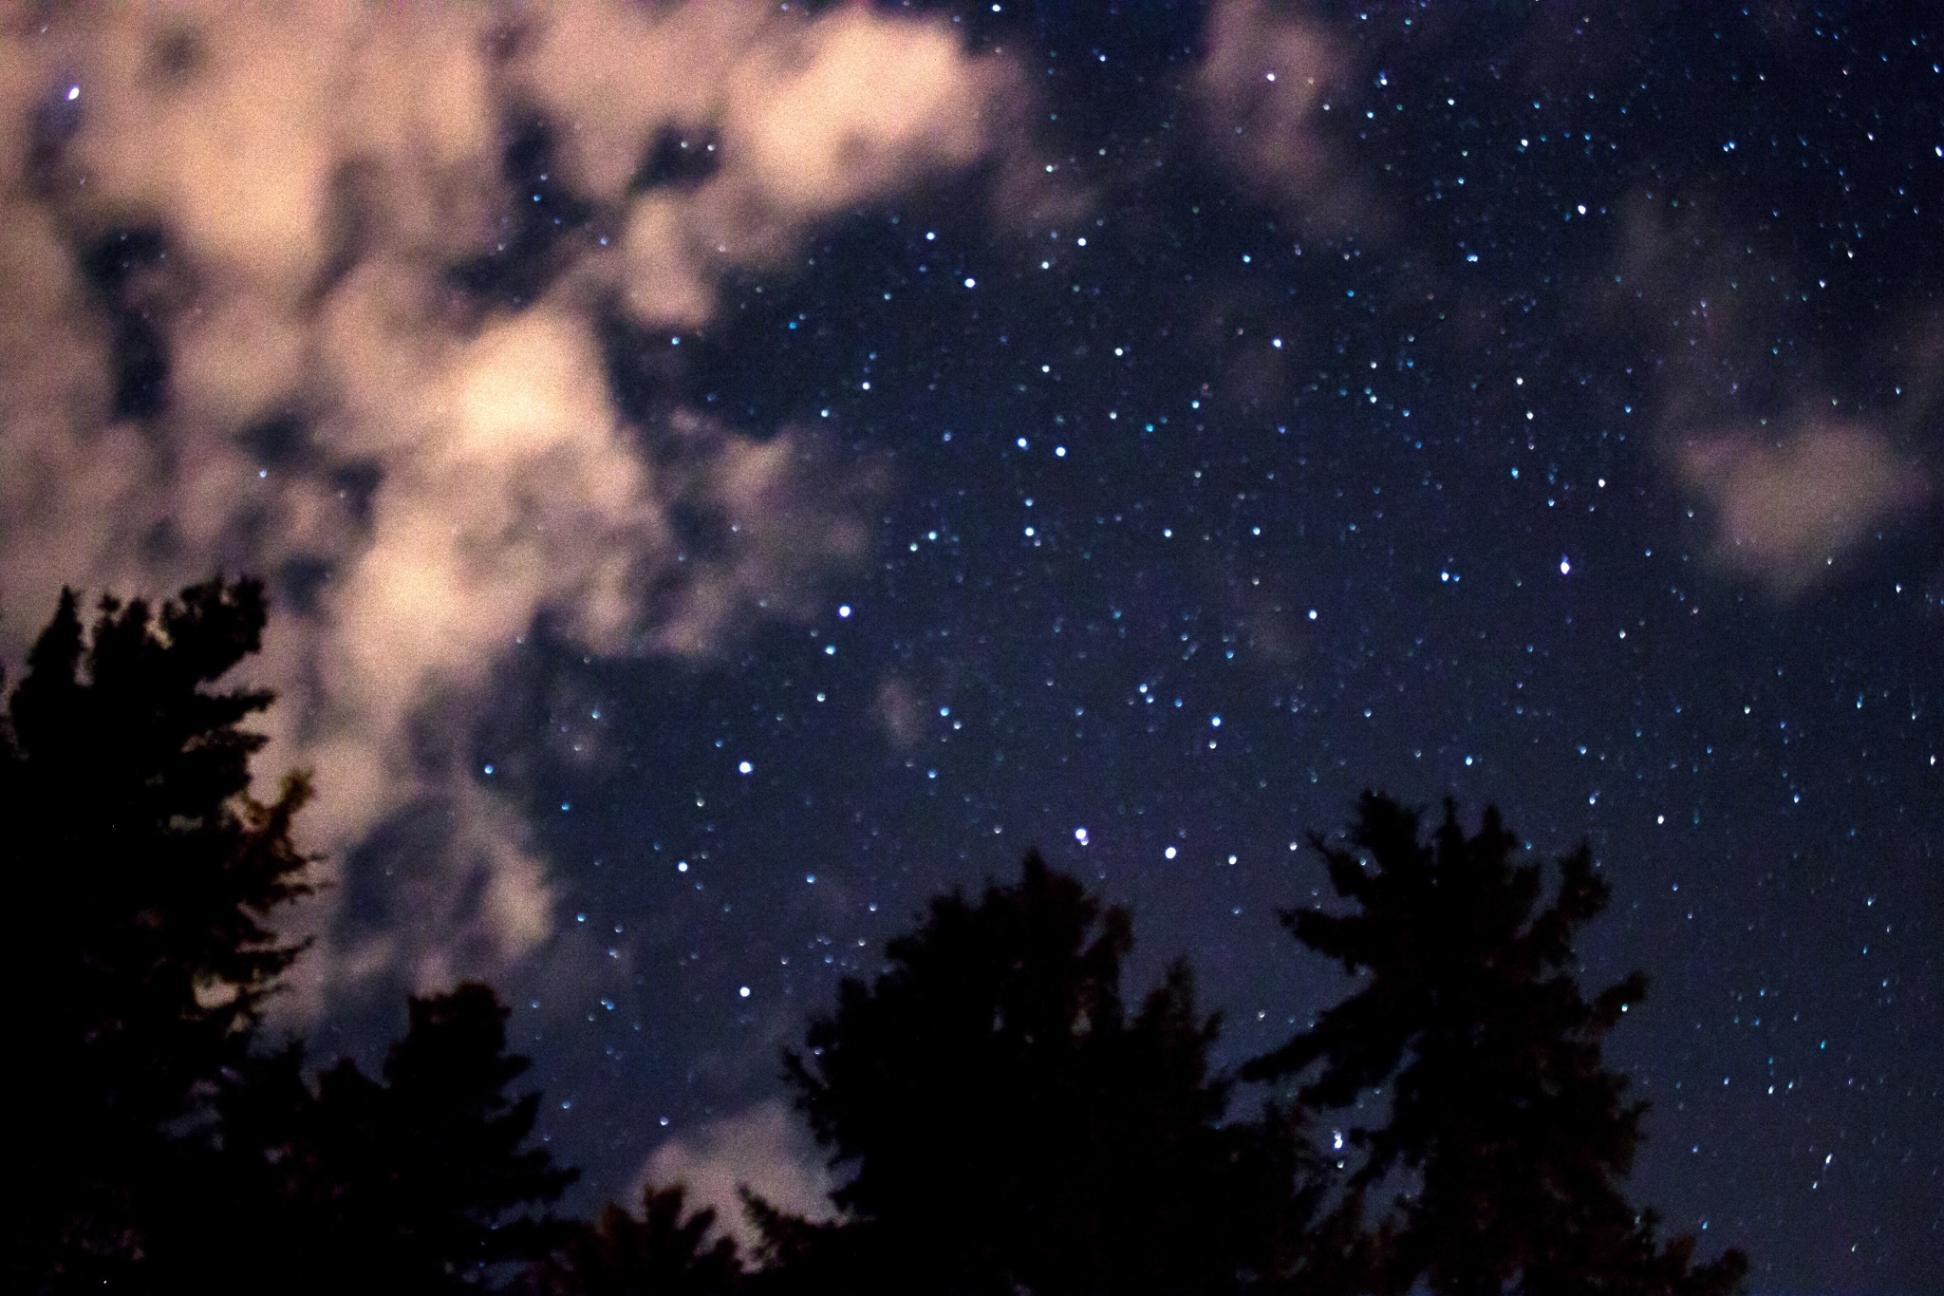 Clouds encroaching on the stars in the night sky above Juneau, Alaska